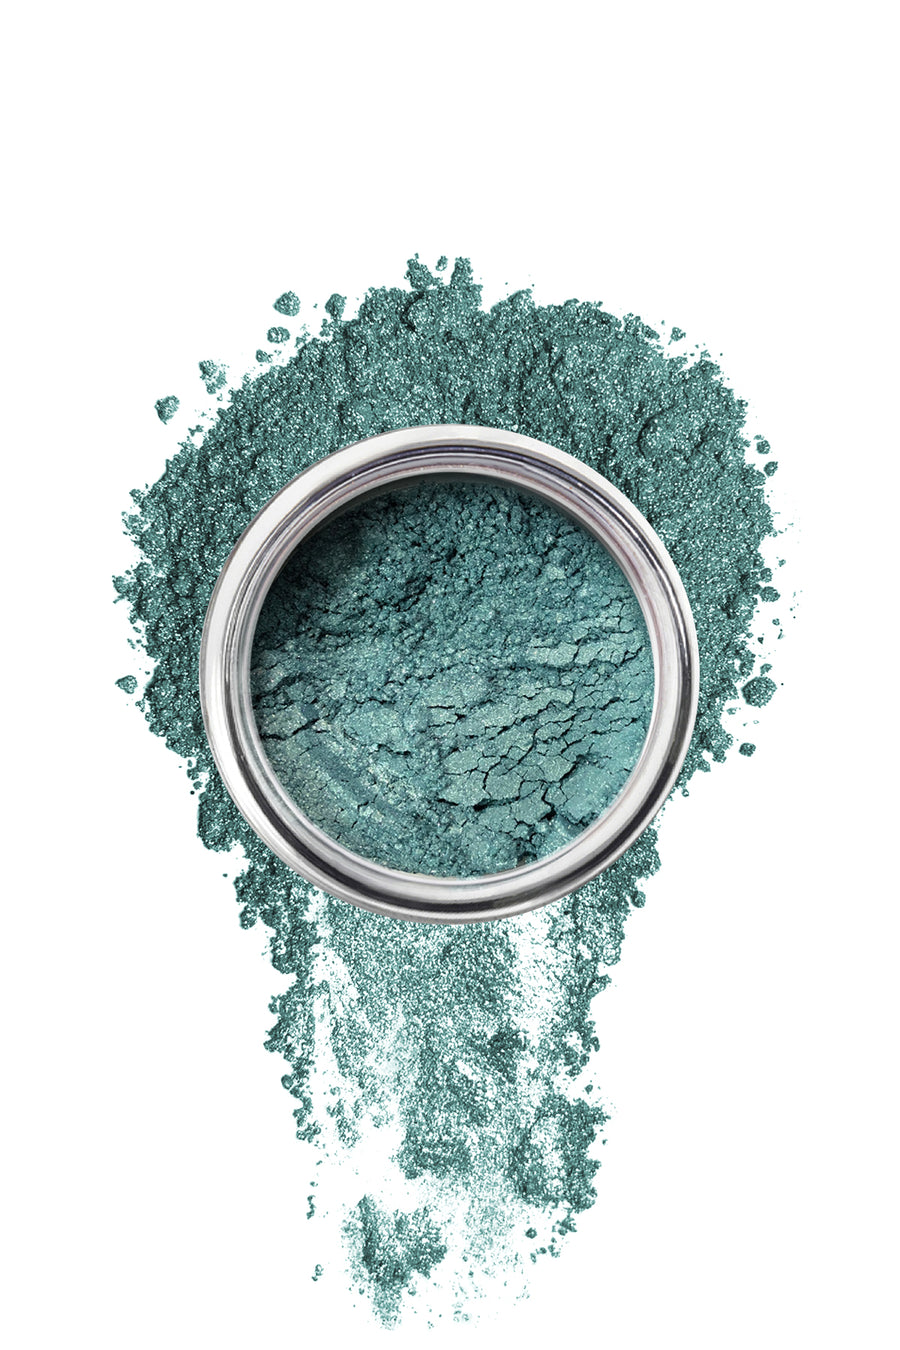 Shimmer Eyeshadow #21 - Aqua Green - Blend Mineral Cosmetics